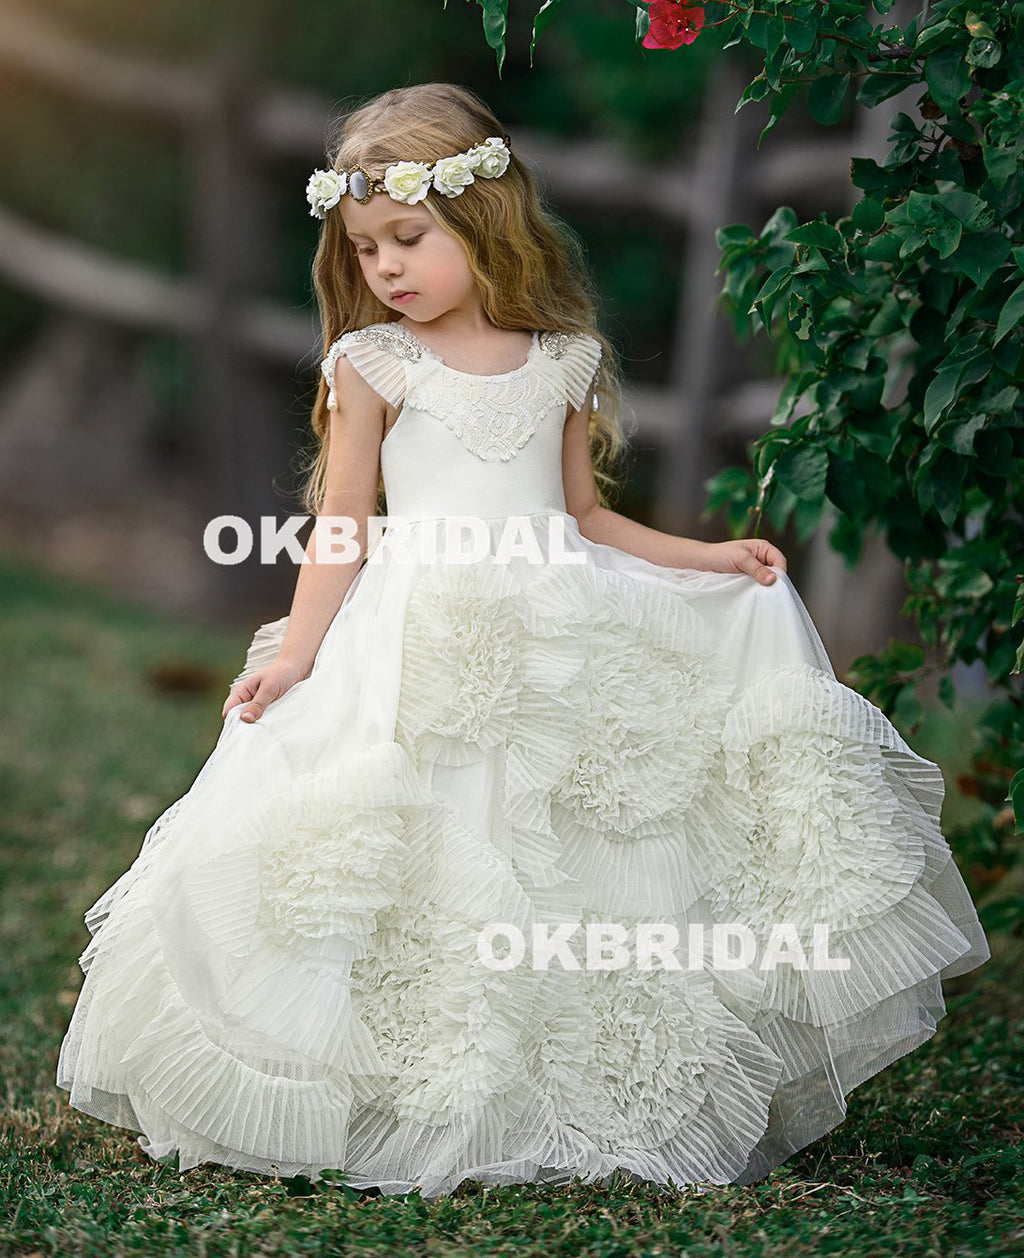 White Cute Tulle Flower Girl Dresses, Beaded Round Neckline Popular Little Girl Dresses, KX988